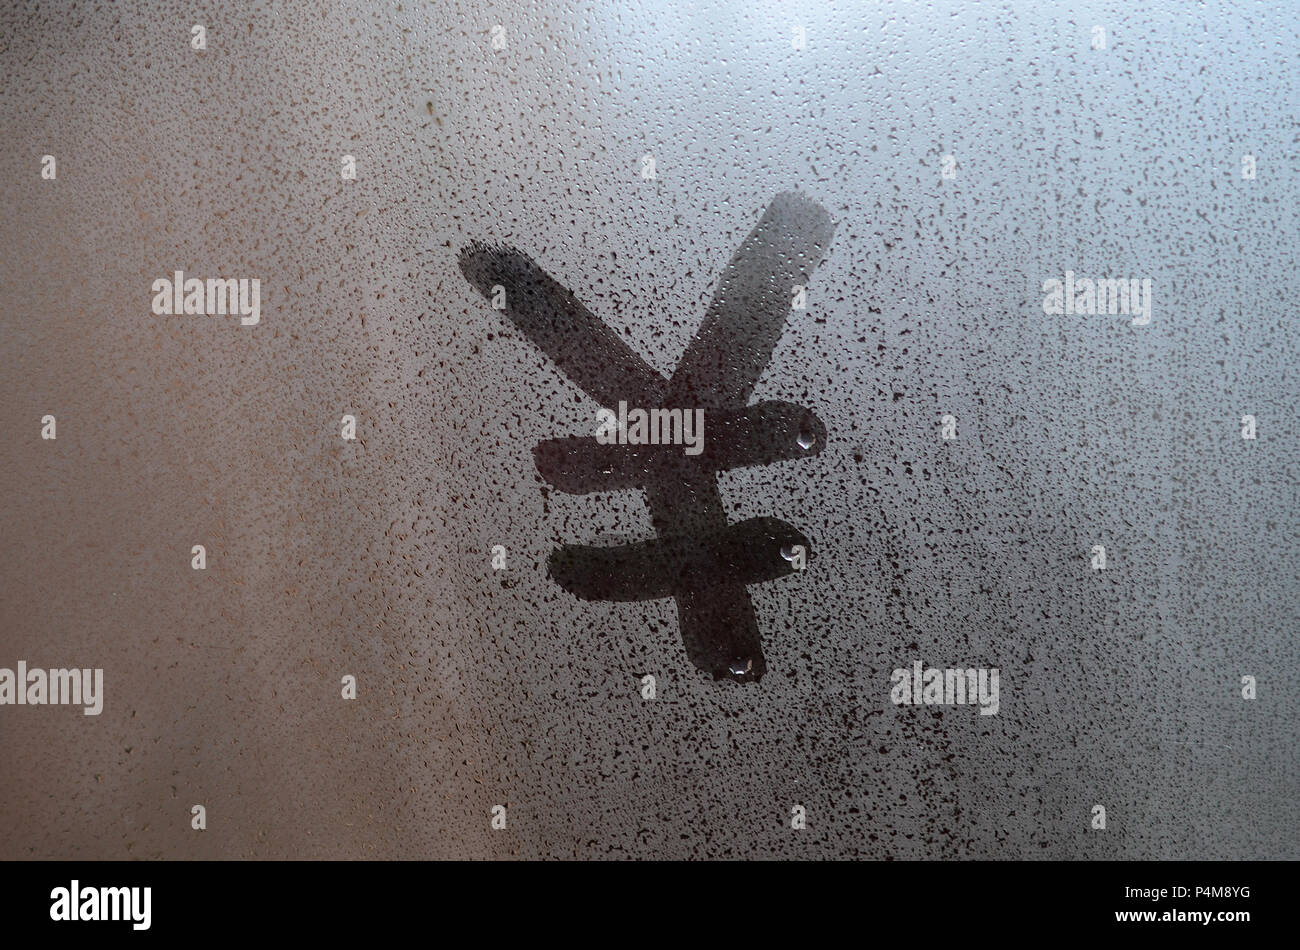 Chinese Yen Symbol is written with a finger on the surface of the misted glass . - Stock Image